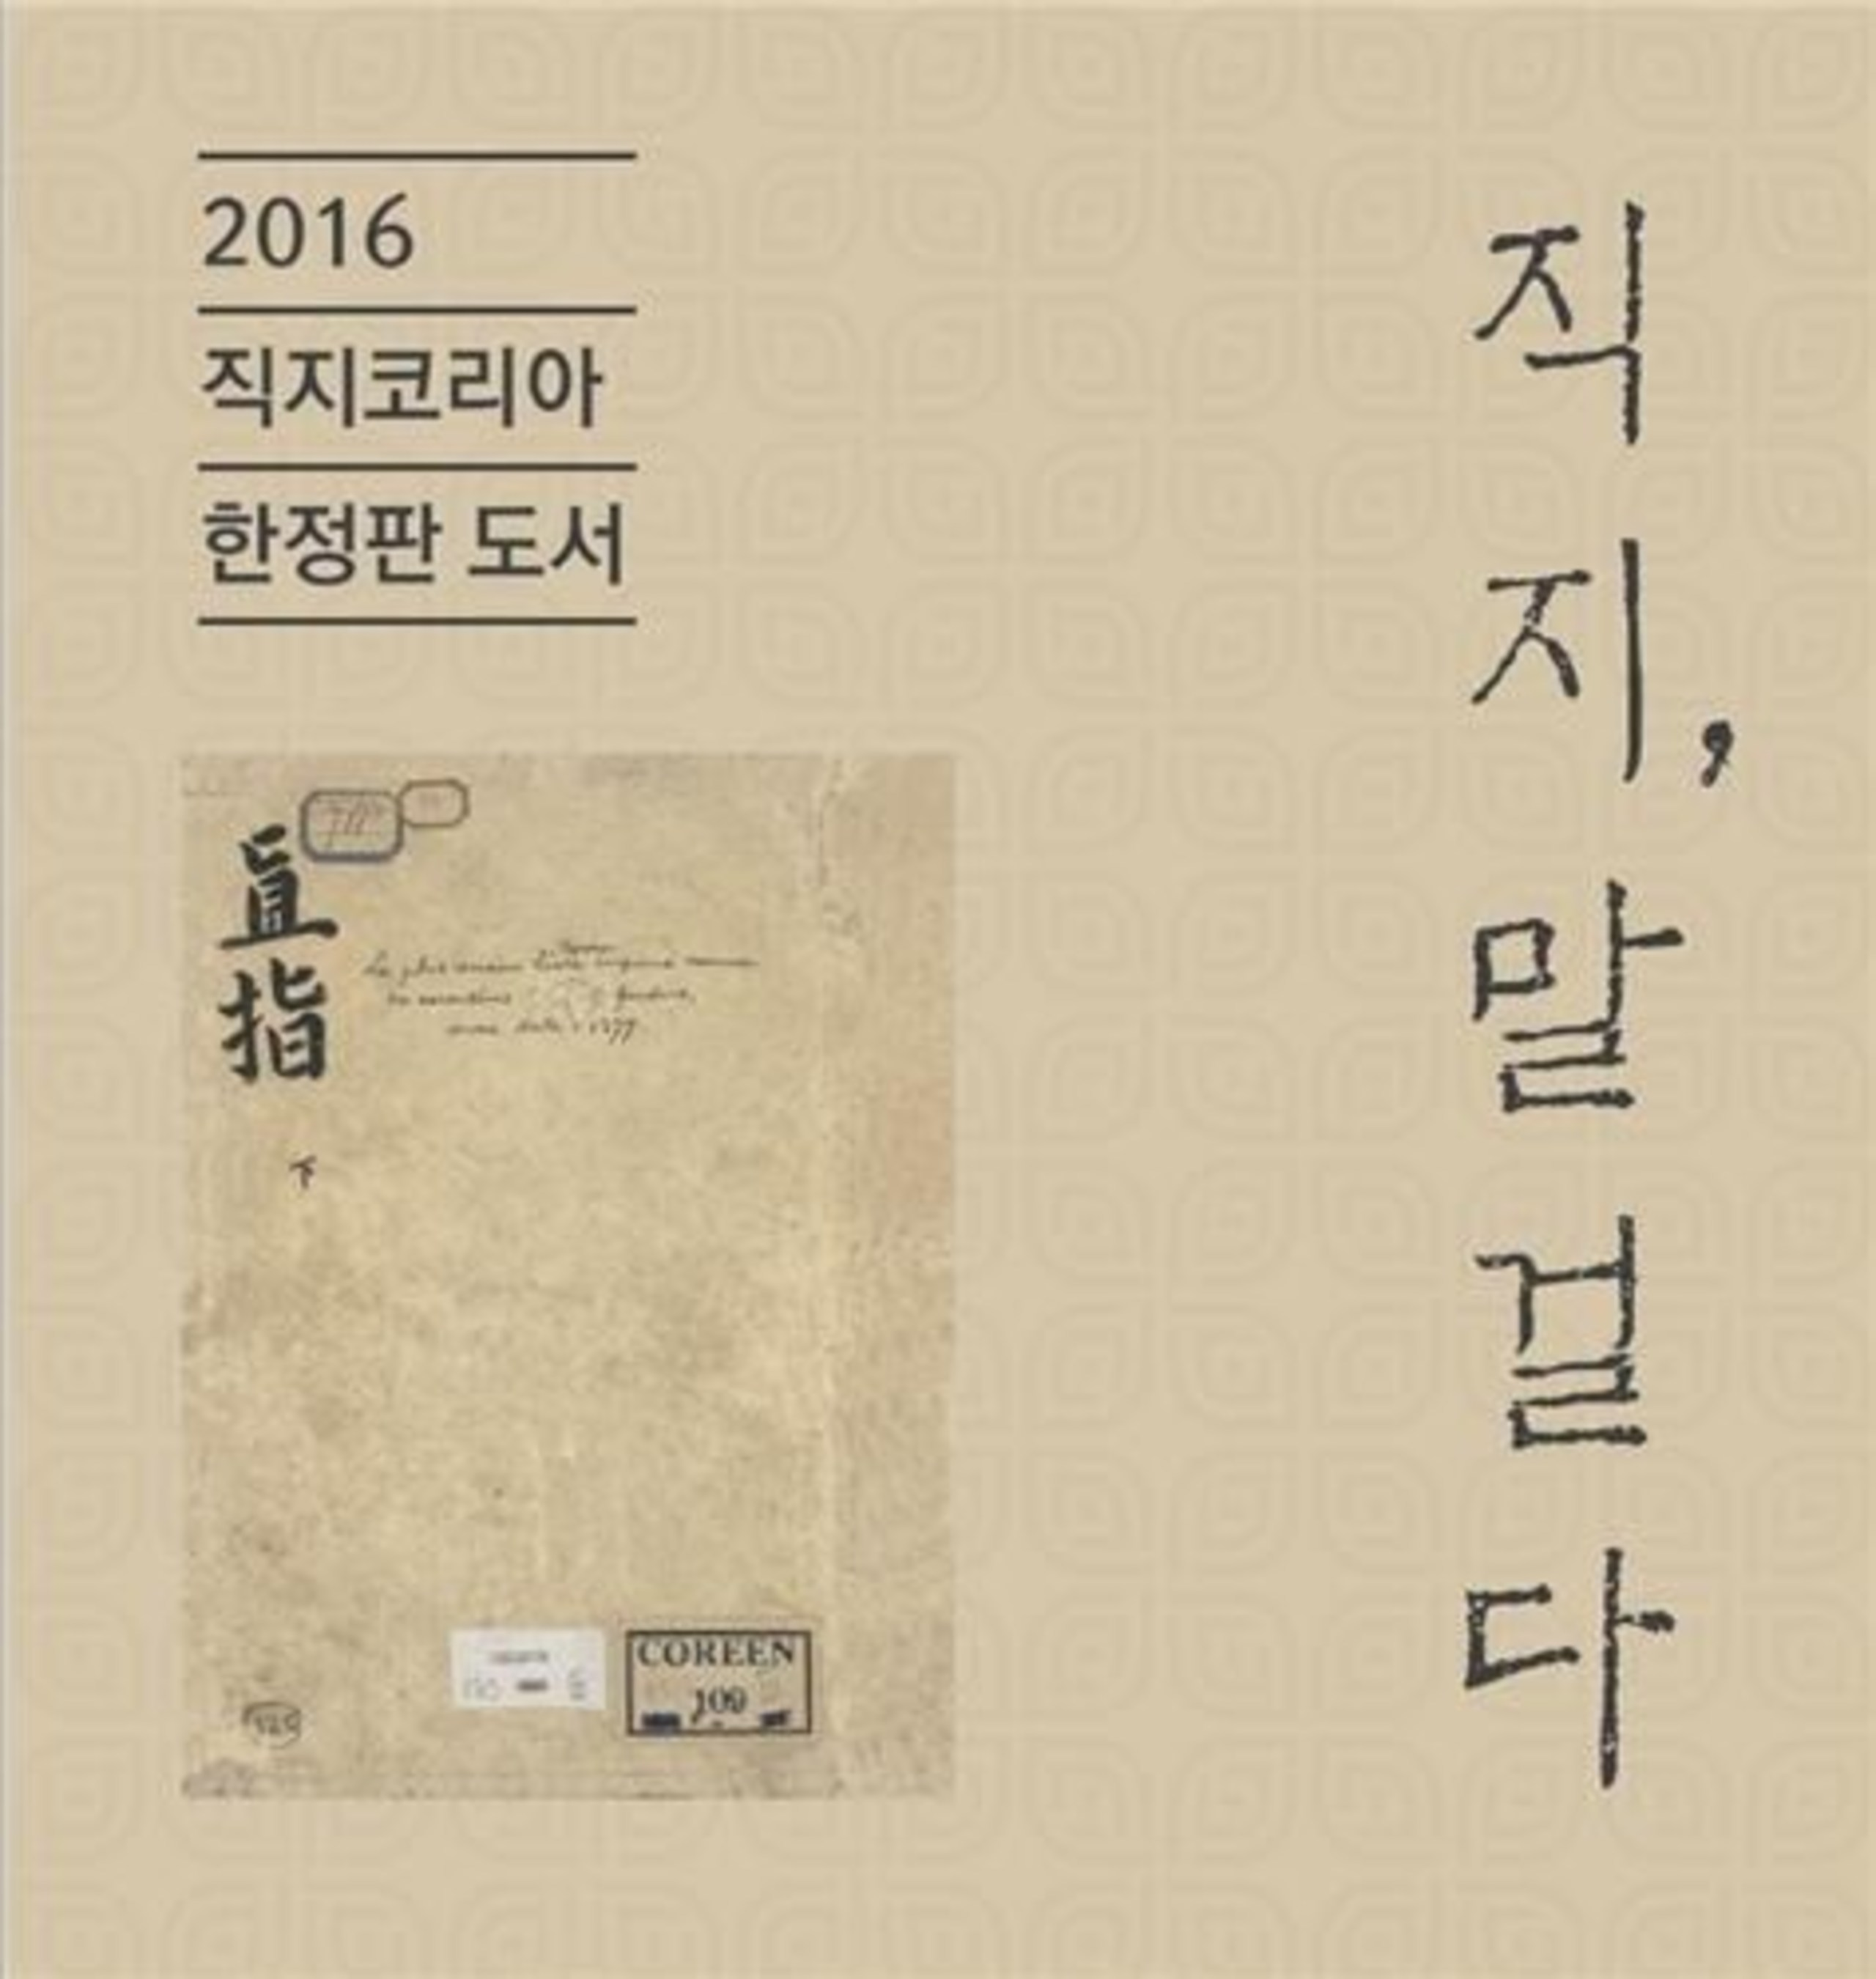 """This undated file photo shows the cover of a limited version book, """"Jikji Speaks to the World."""" It contains the modern reinterpretation of ancient Korean """"Jikji Shimche Yojeol,"""" the world's earliest existing book printed with movable metallic keys."""